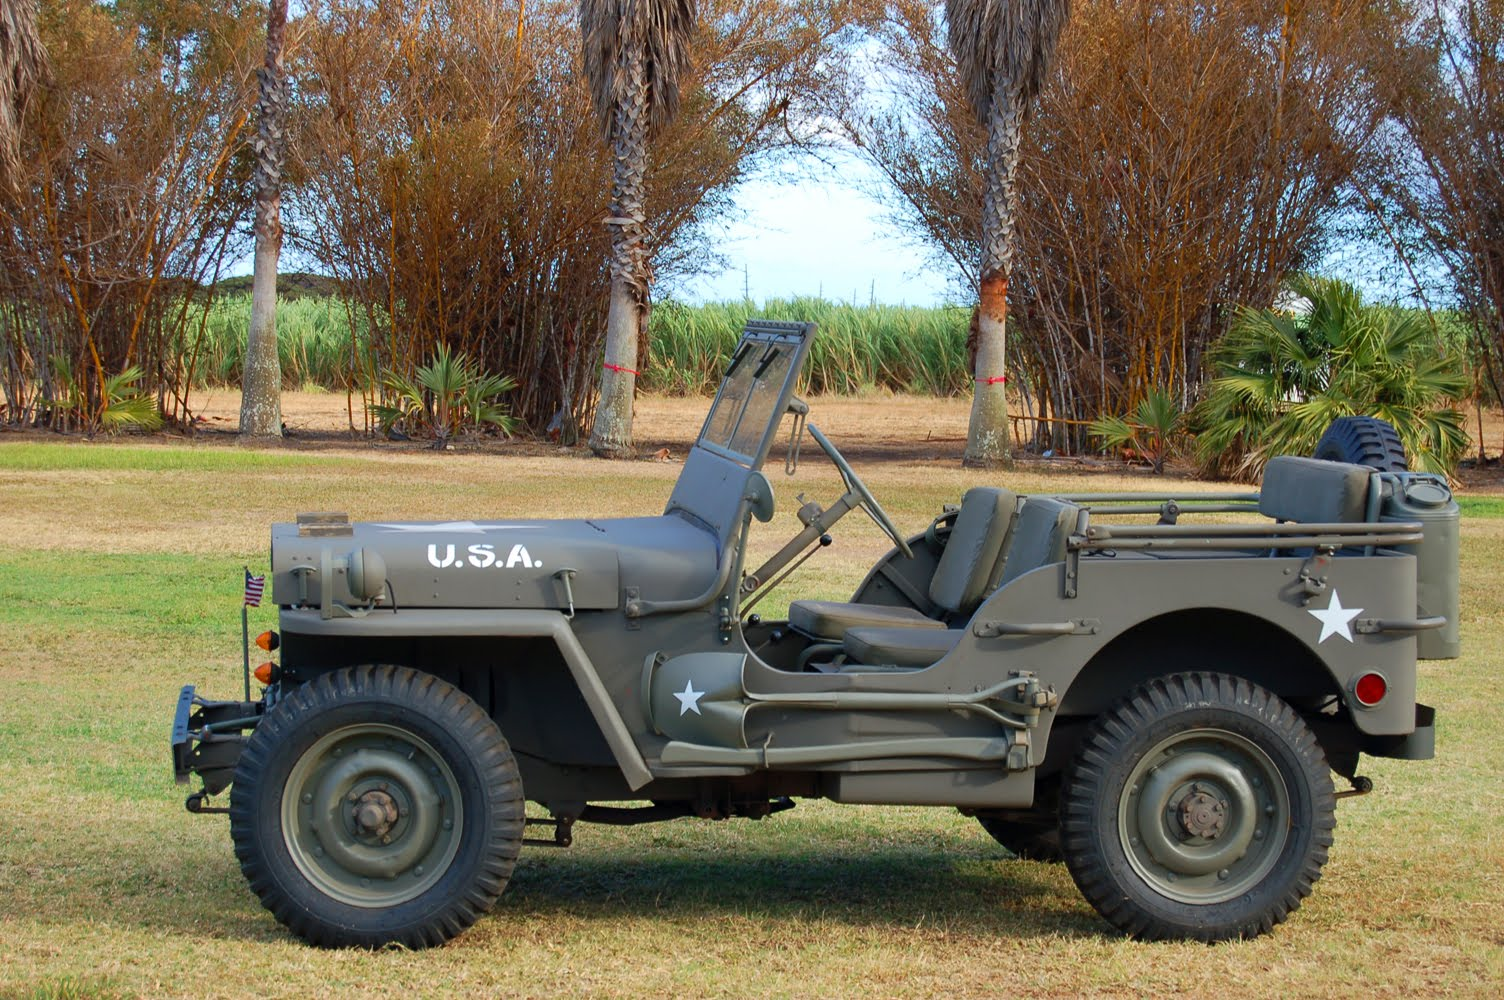 HAFF] The name Jeep came from the abbreviation used in the army for